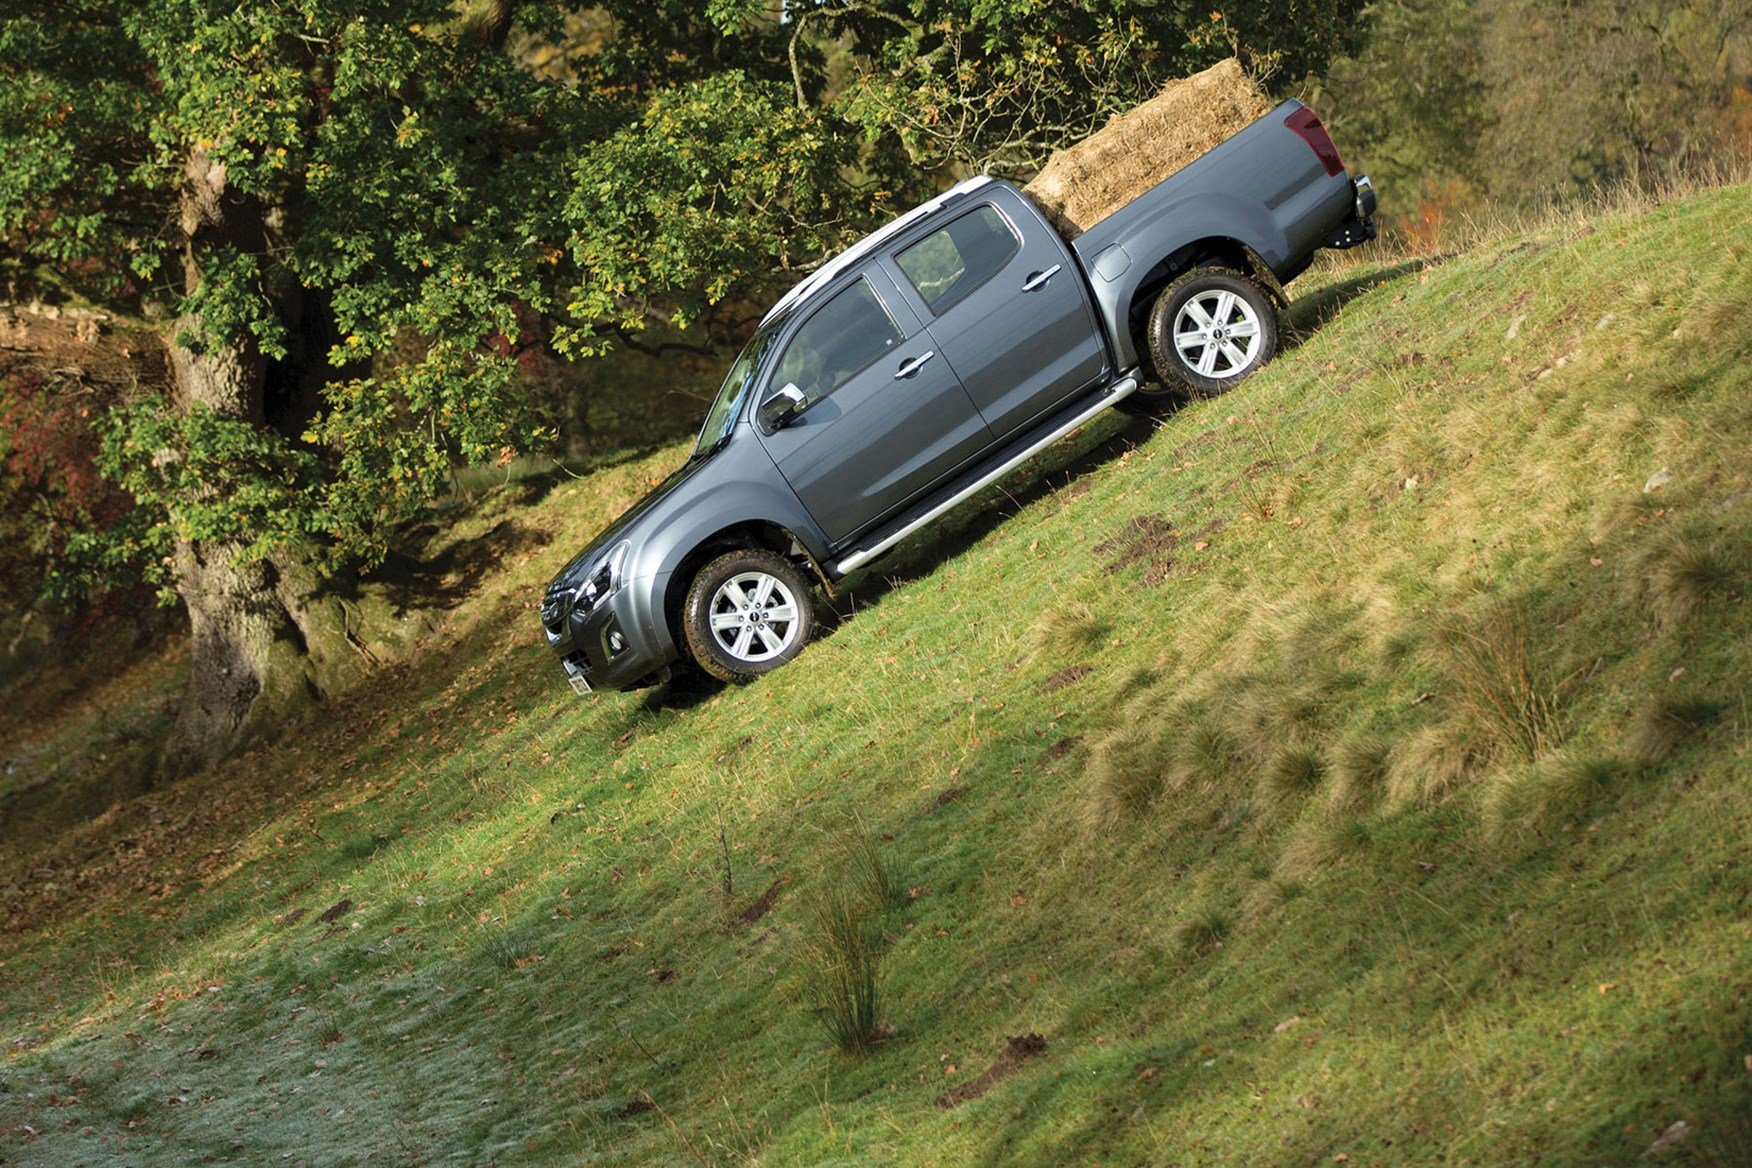 Isuzu D-Max (2017), driving down hill off-road with hay bail